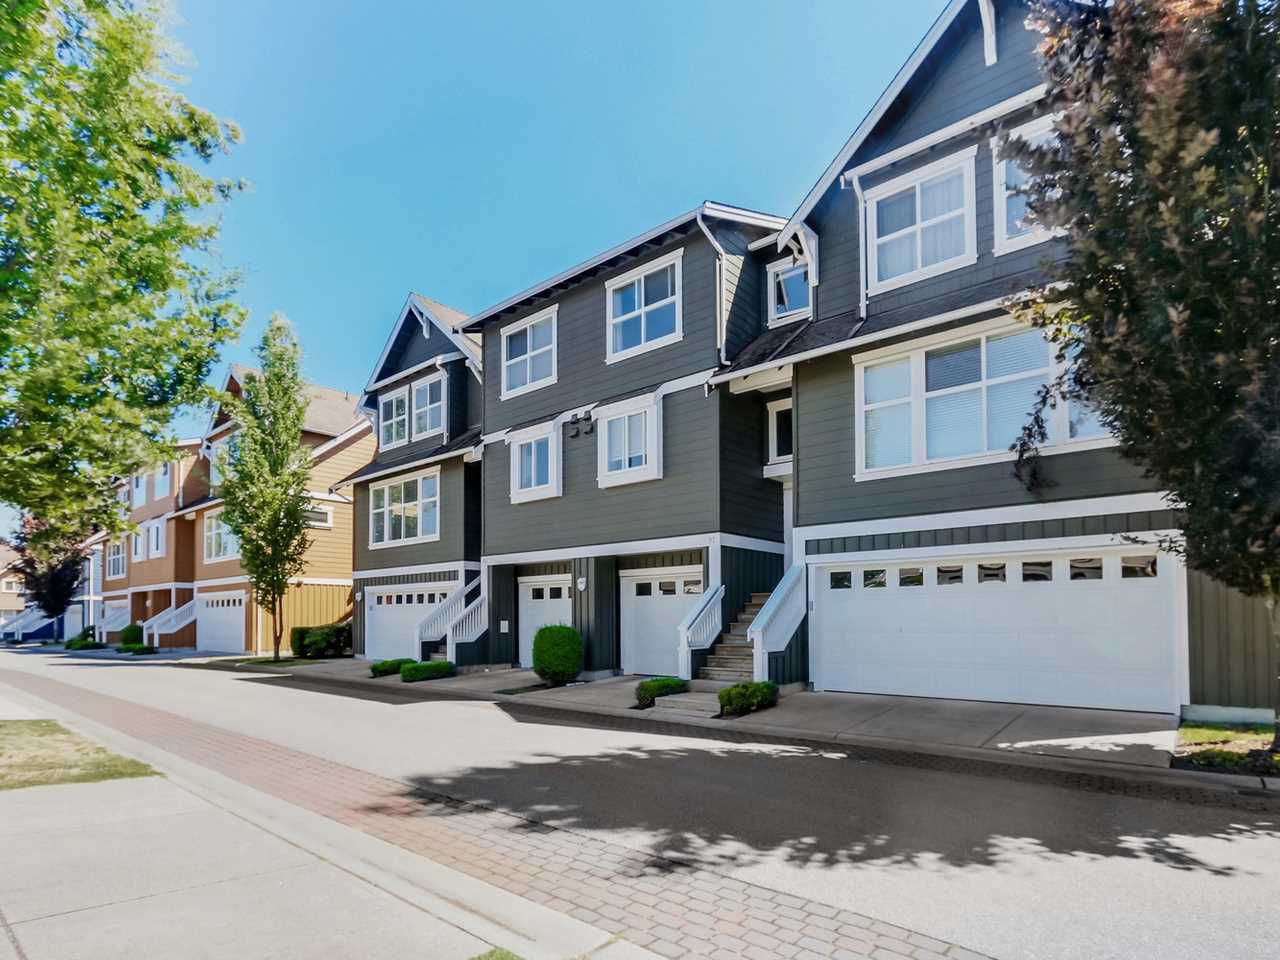 """Main Photo: 97 3088 FRANCIS Road in Richmond: Seafair Townhouse for sale in """"SEAFAIR WEST"""" : MLS®# R2082539"""